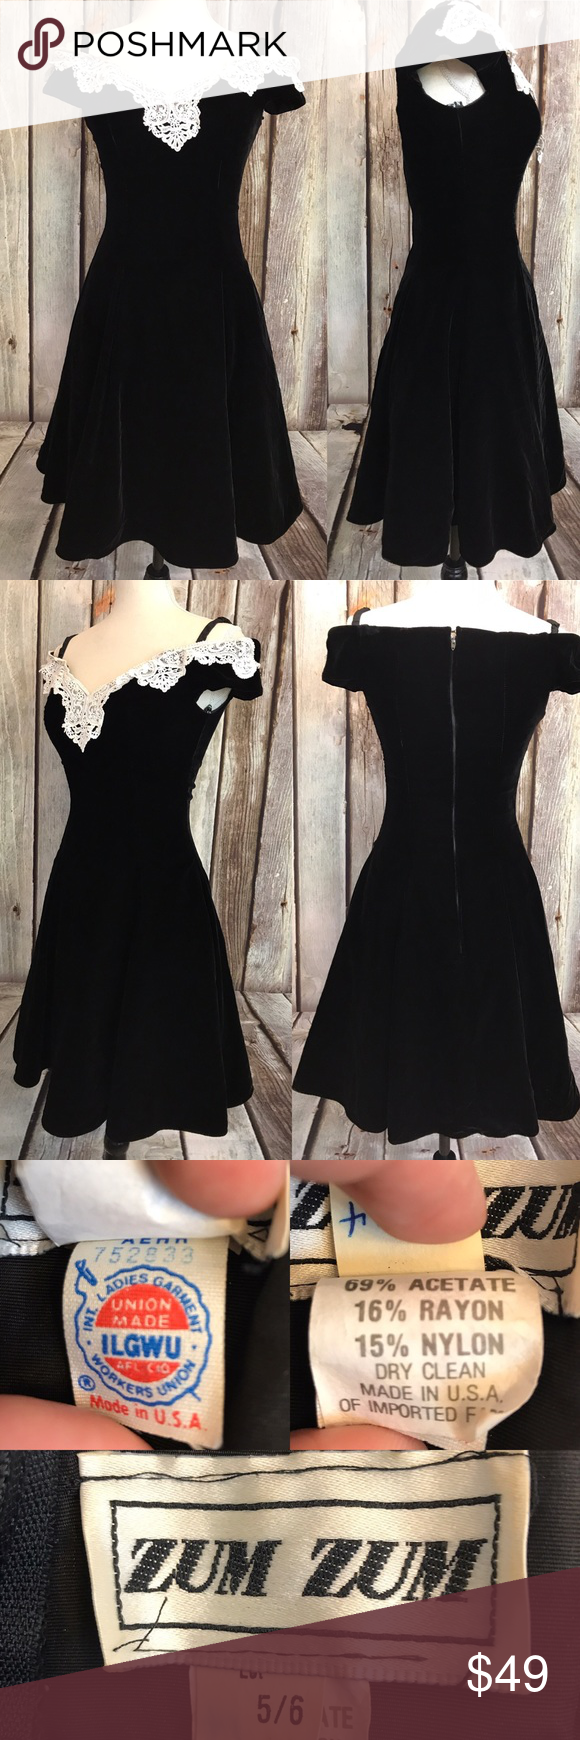 Zum zum vintage black velvet prom dress size prom dresses